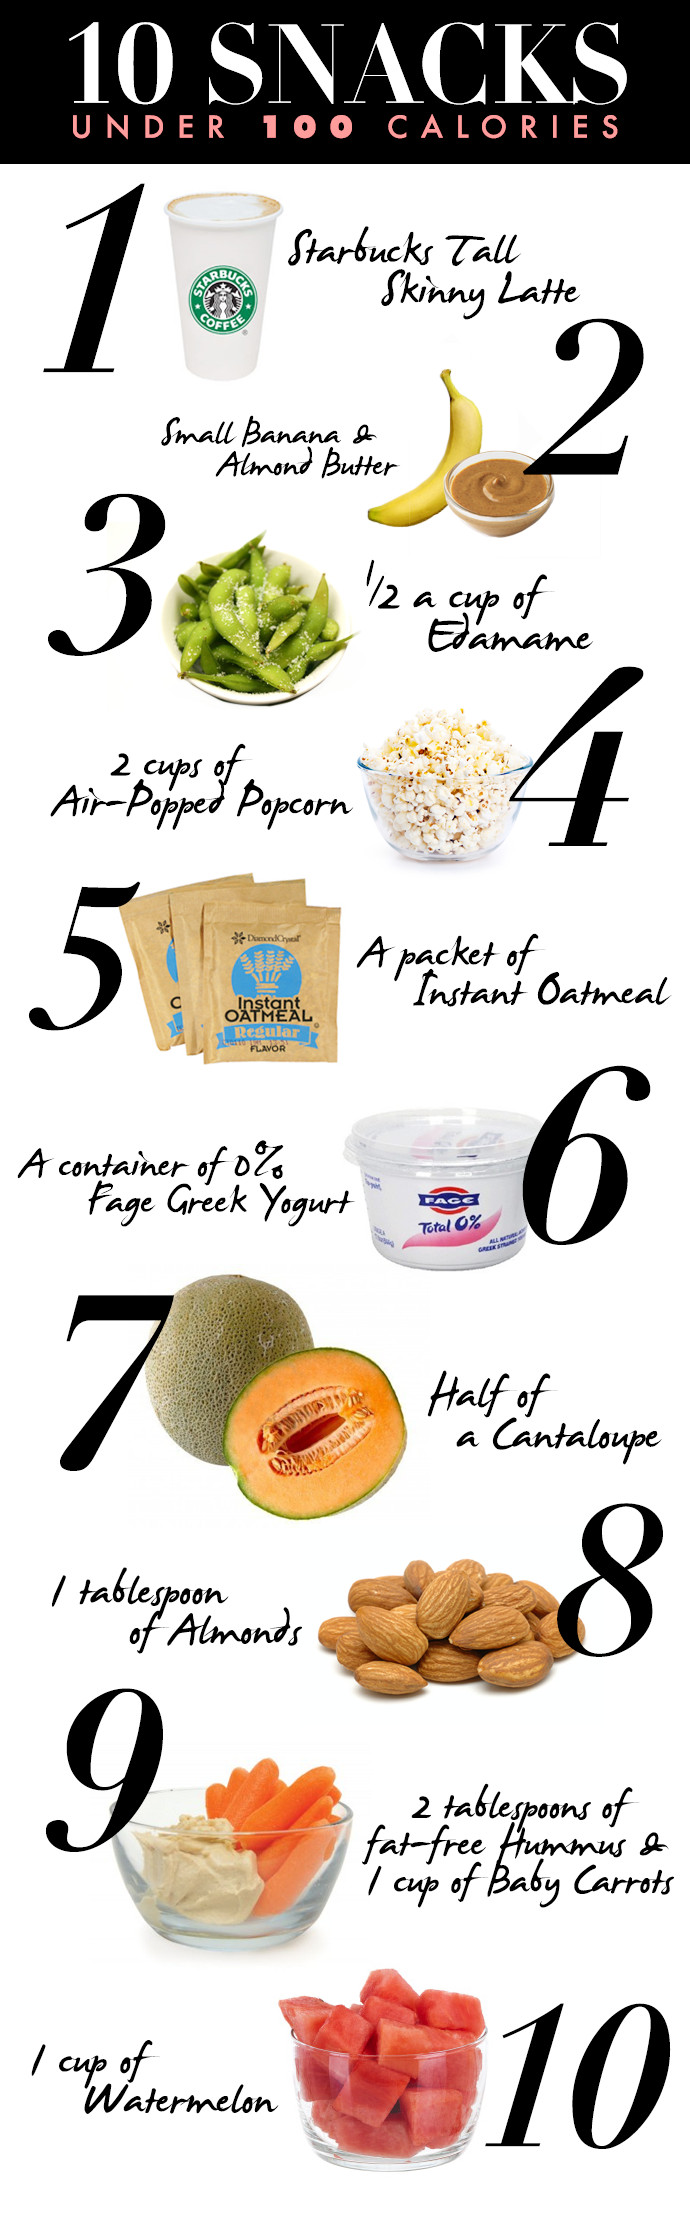 Healthy Snacks With Calories  10 Healthy Snacks Under 100 Calories